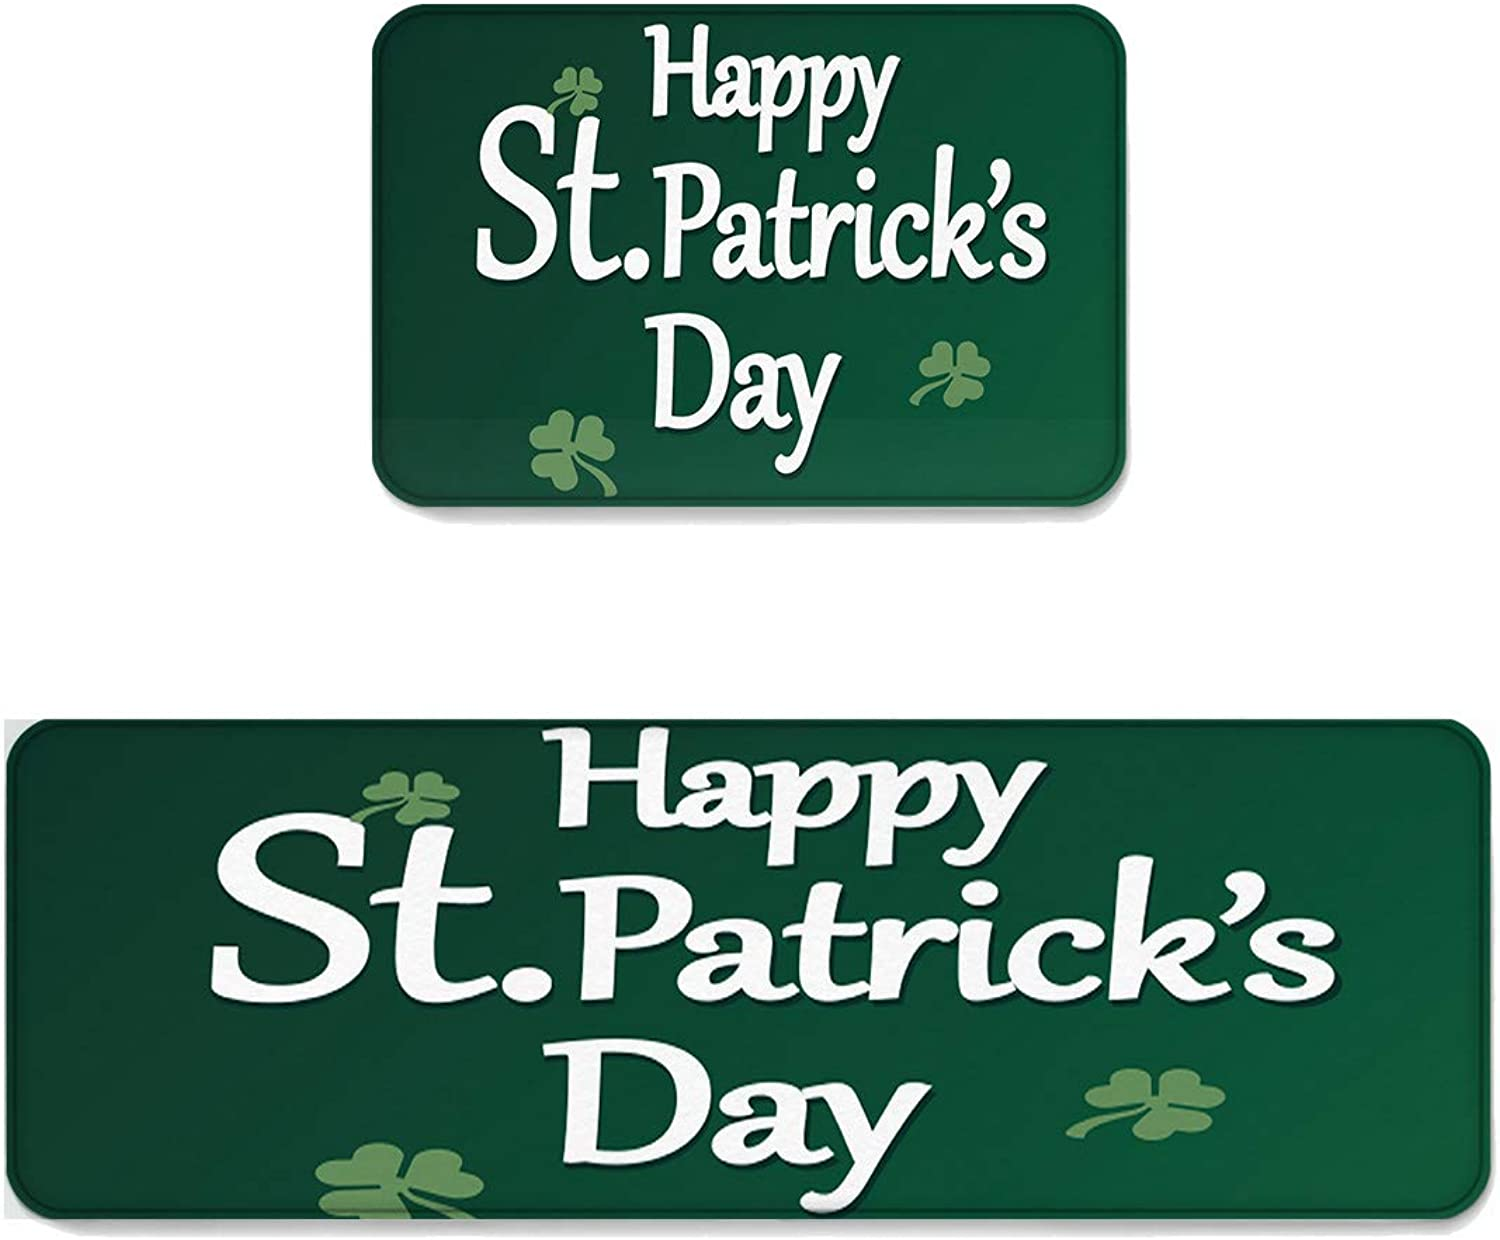 Kitchen Rug Sets 2 Piece Floor Mats Non-Slip Rubber Backing Area Rugs White Letters St Patrick's Day on Green Background Doormat Washable Carpet Inside Door Mat Pad Sets (19.7  x 31.5 +19.7  x 47.2 )